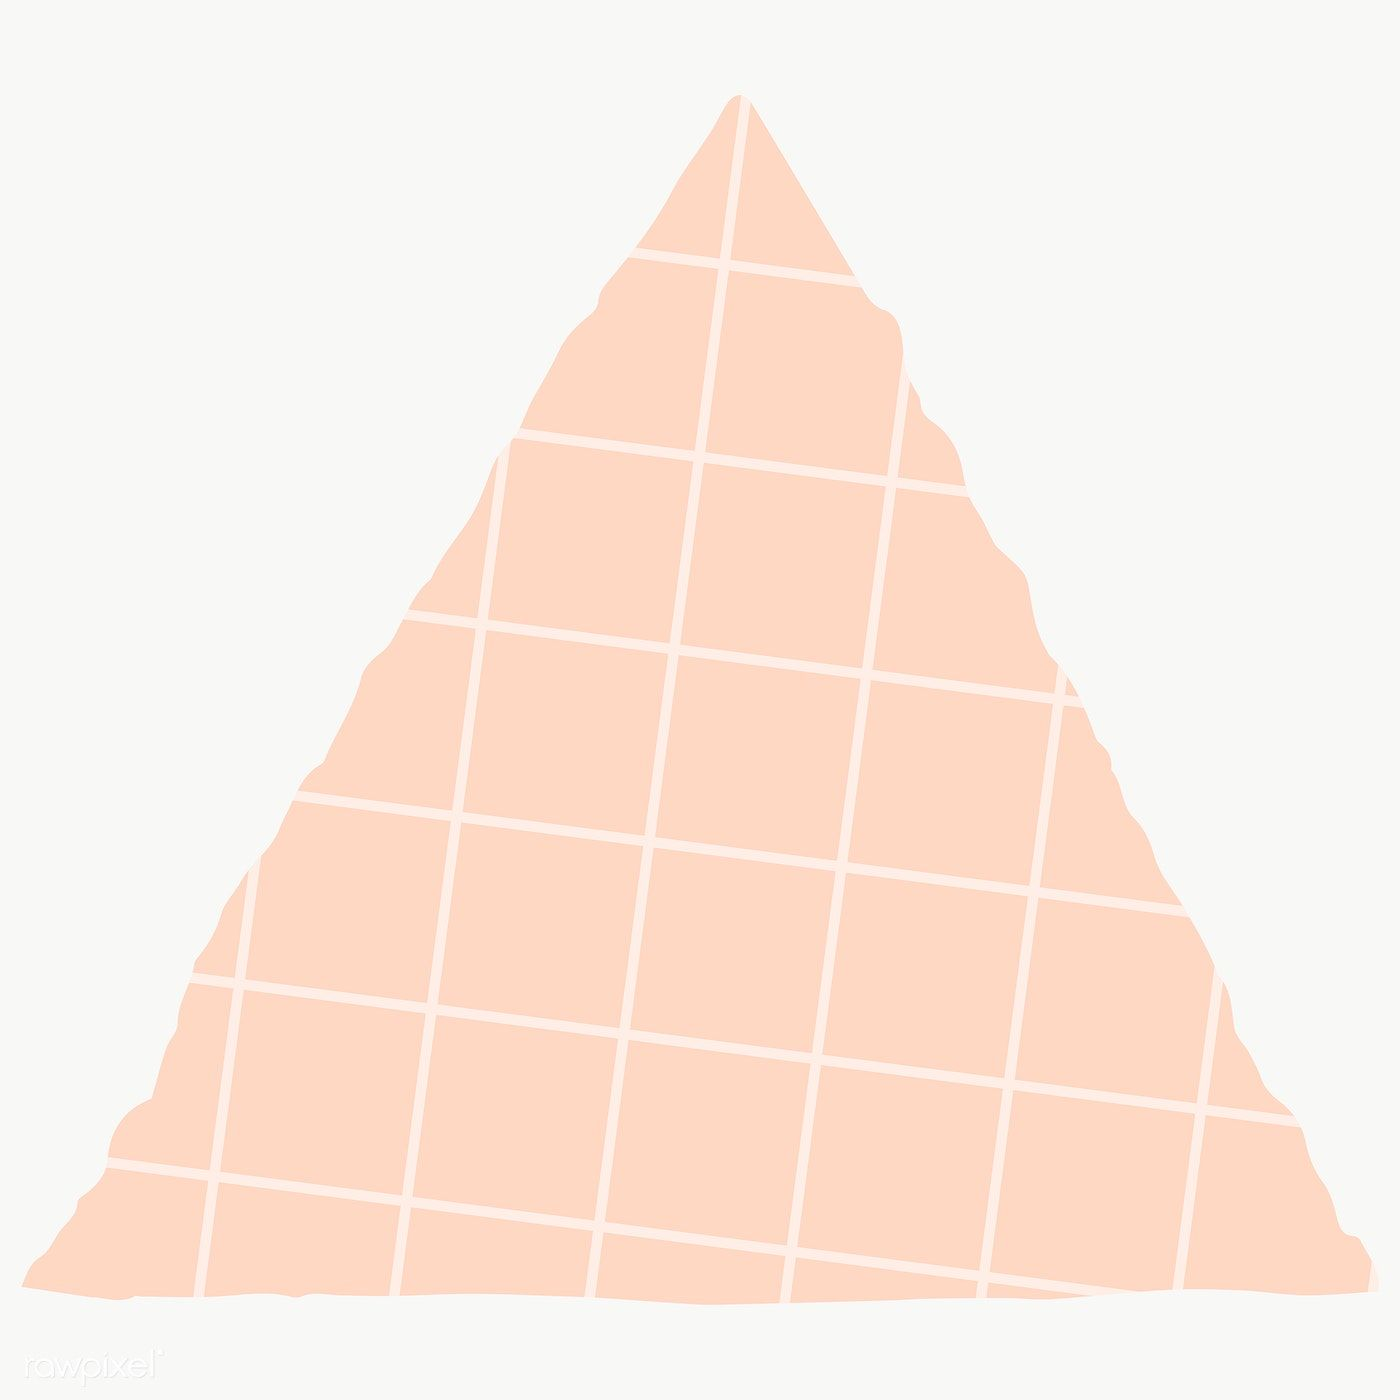 Triangle Corner Yellow Png Instagram Design Borders And Frames Triangle